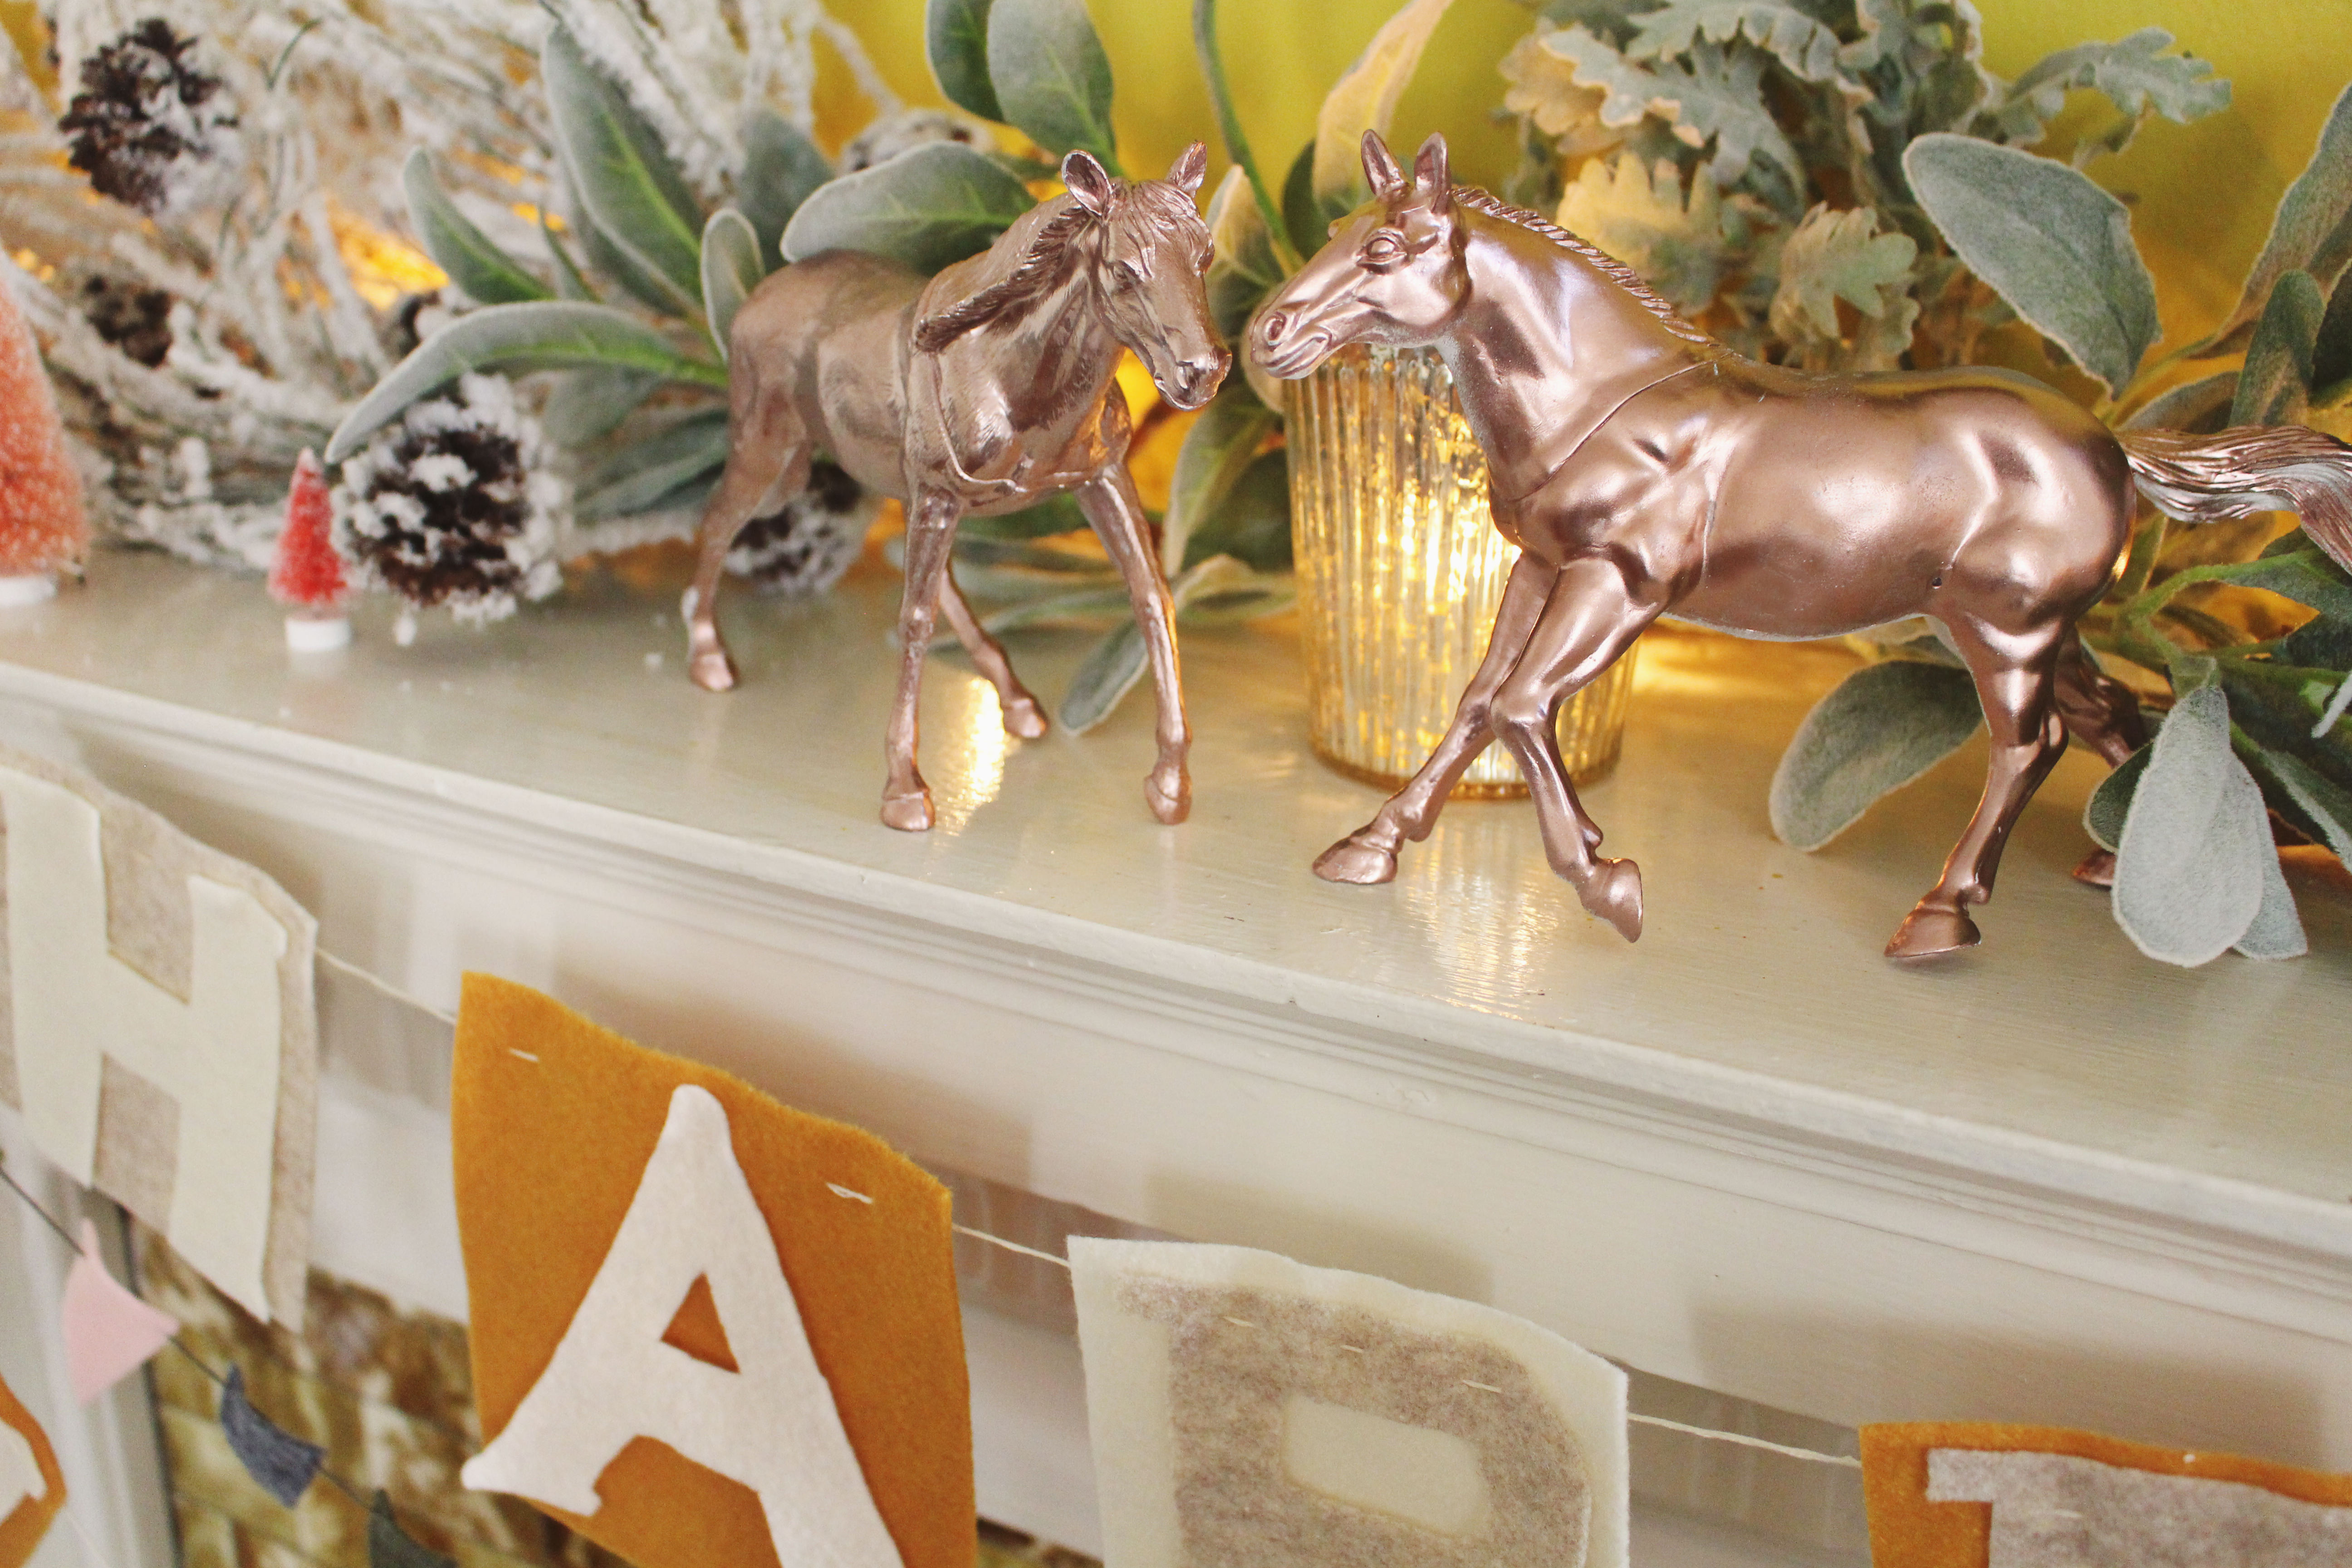 DIY rose gold horses are an unexpected holiday mantle detail